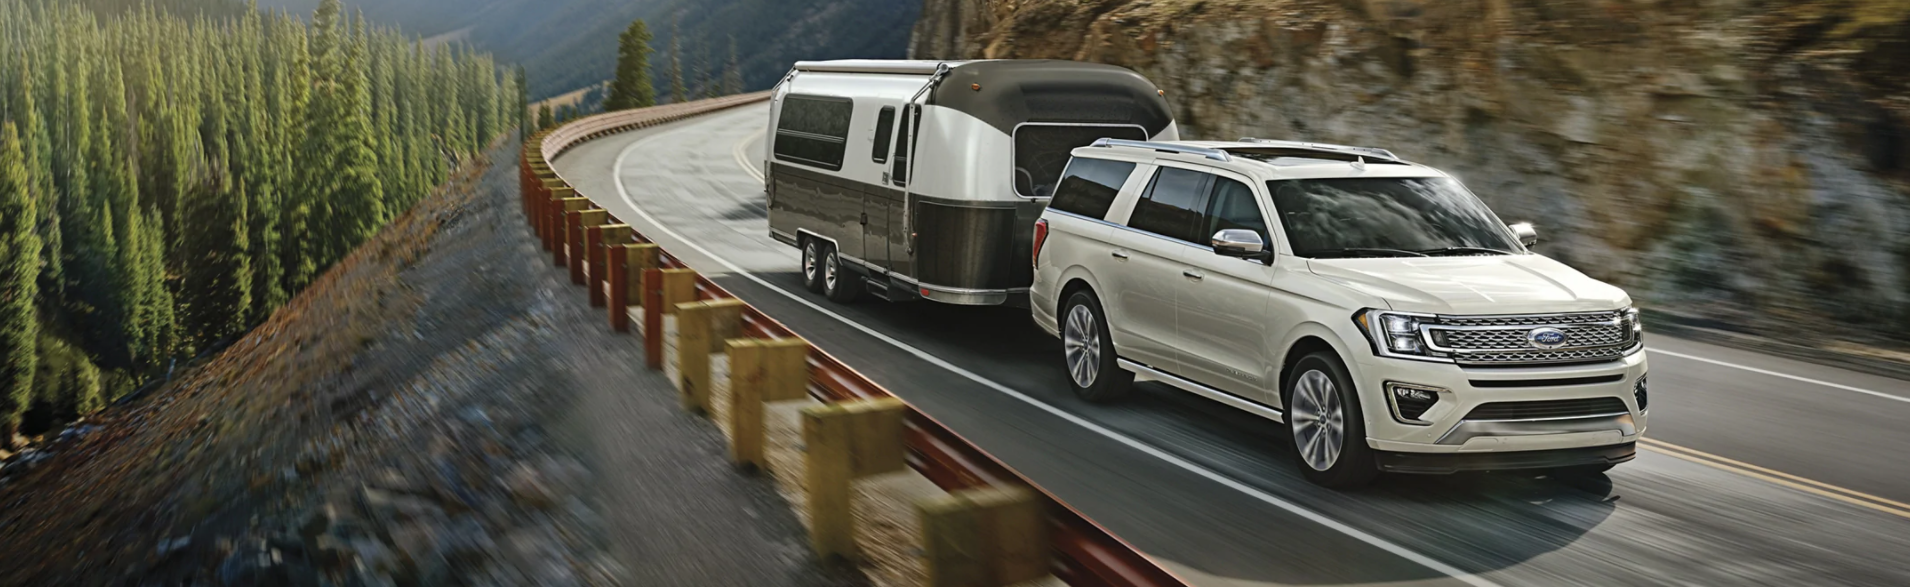 Ford Expedition Makes KBB's List Of Best Family Cars | Packey Webb Ford | Downers Grove, IL